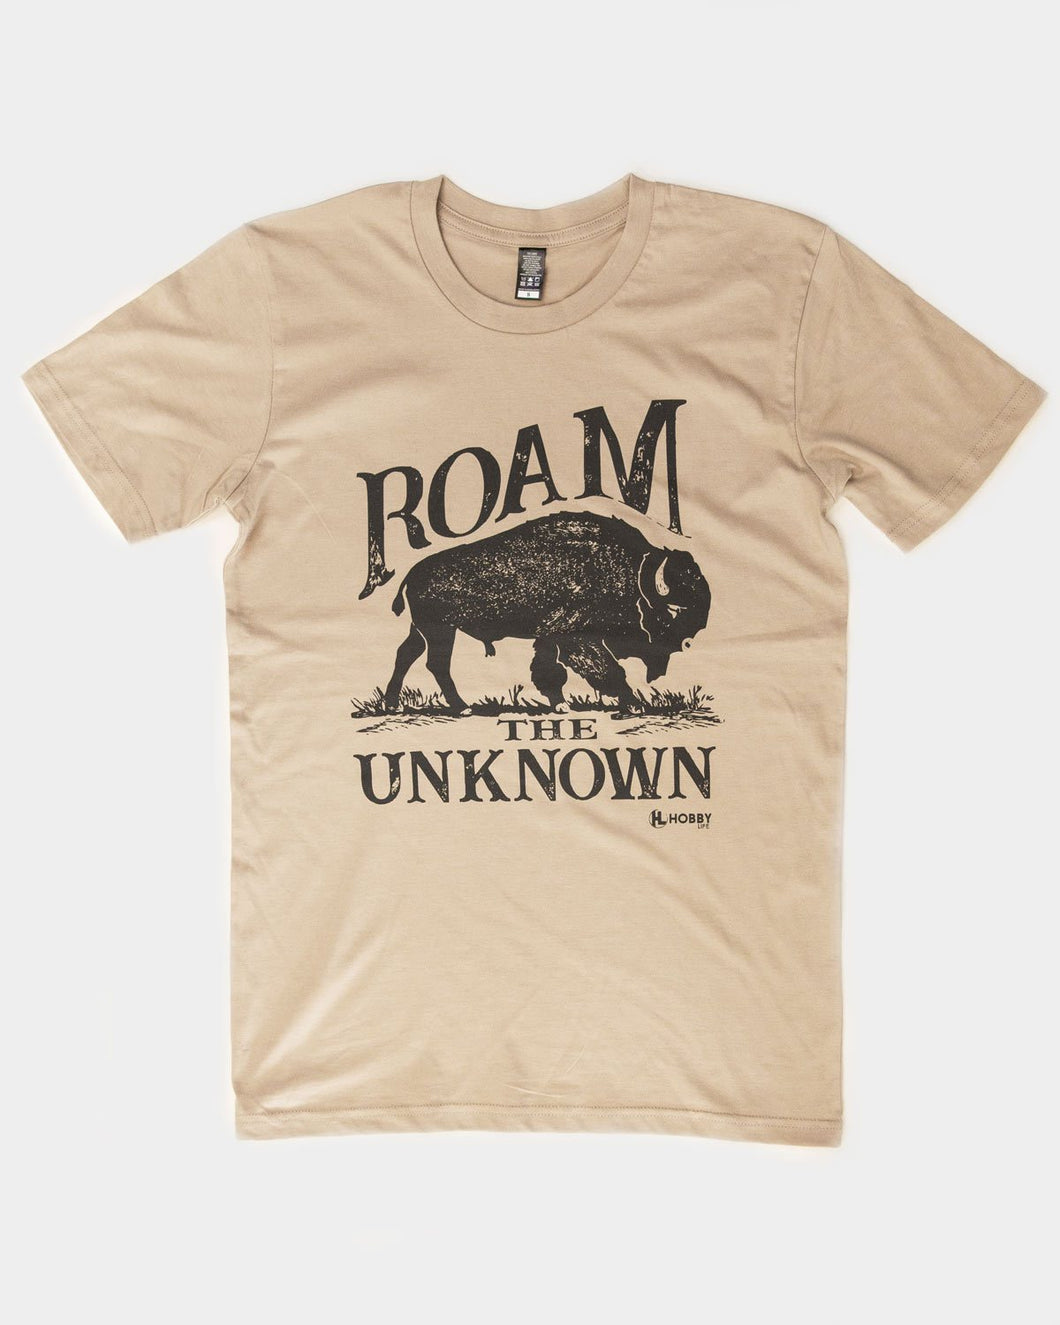 Raom the unknown buffalo bison short sleeve graphic t shirt 6 whiskey on sale